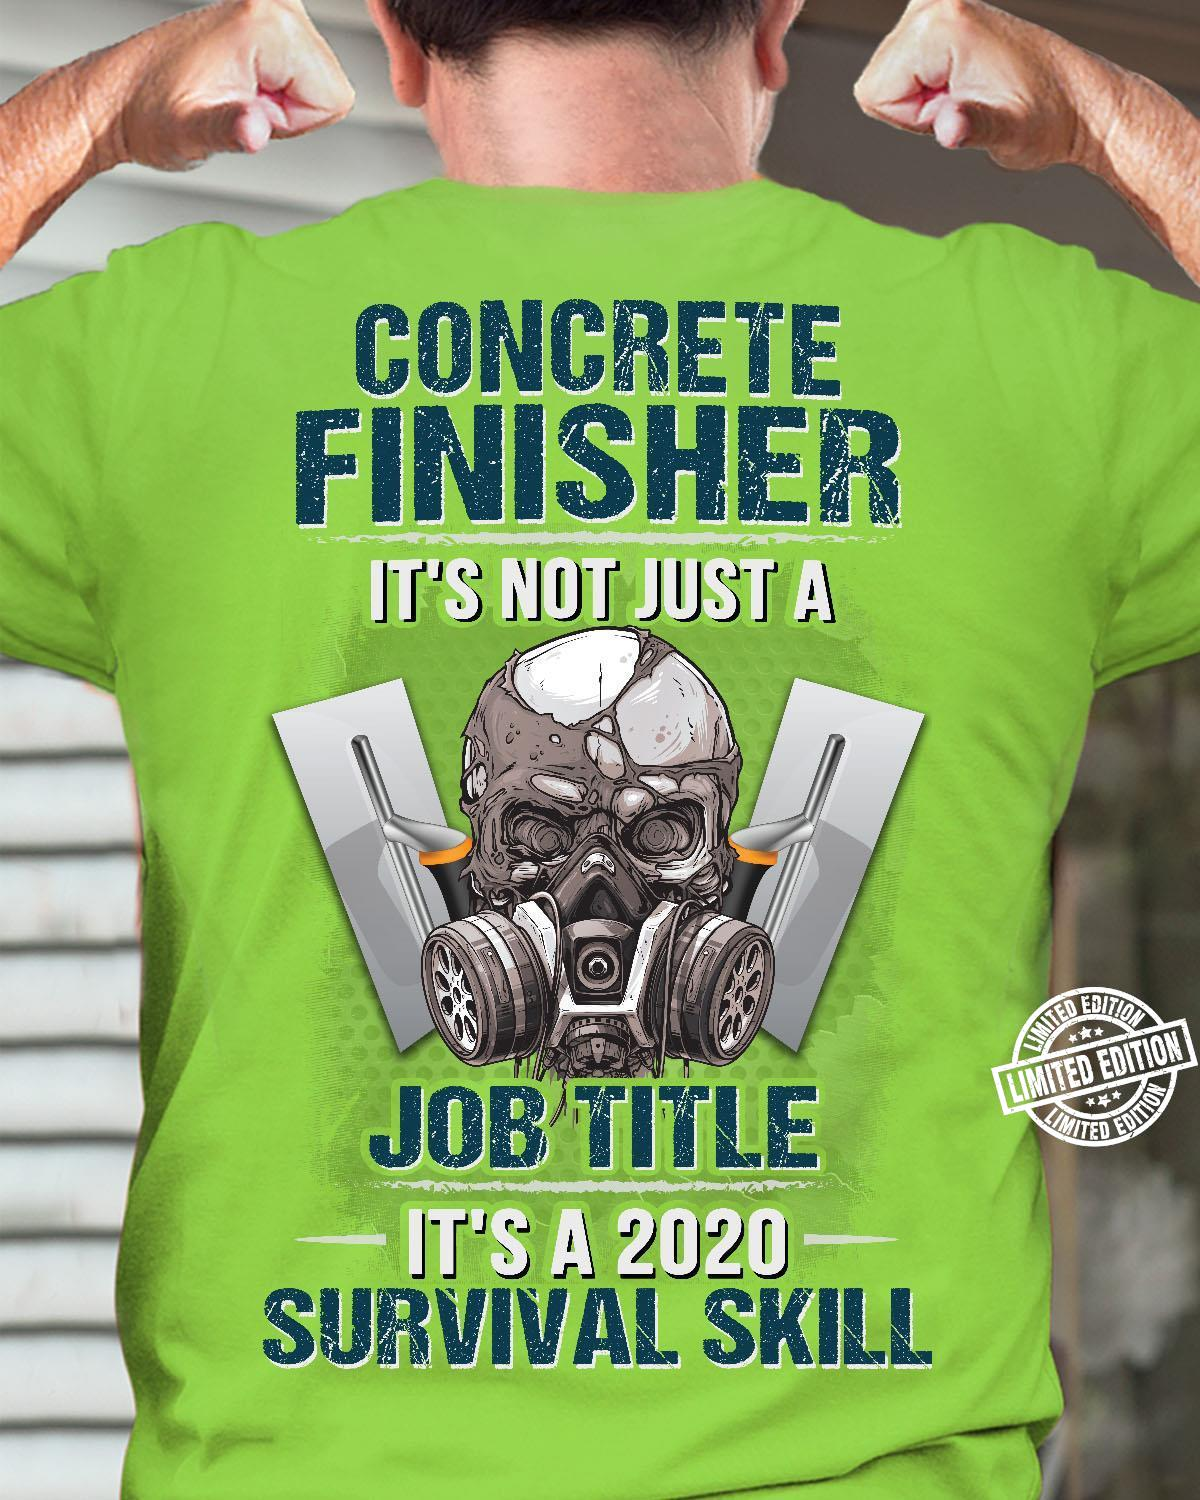 Concrete finisher it's not just a job title it's a 2020 survival skill shirt